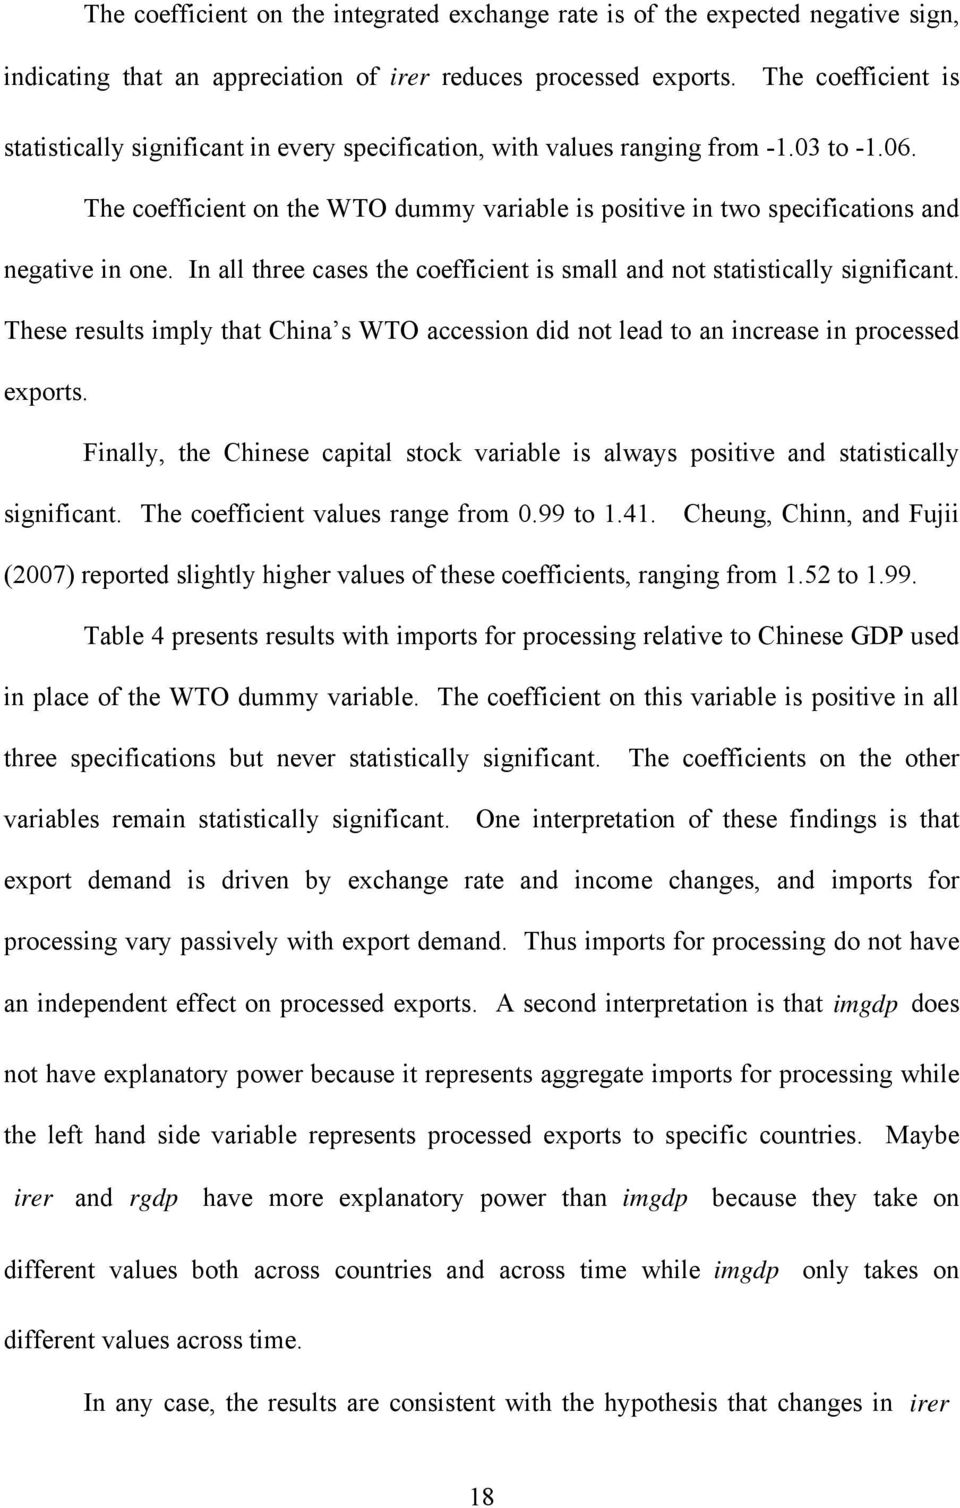 In all hree cases he coefficien is small and no saisically significan. These resuls imply ha China s WTO accession did no lead o an increase in processed expors.